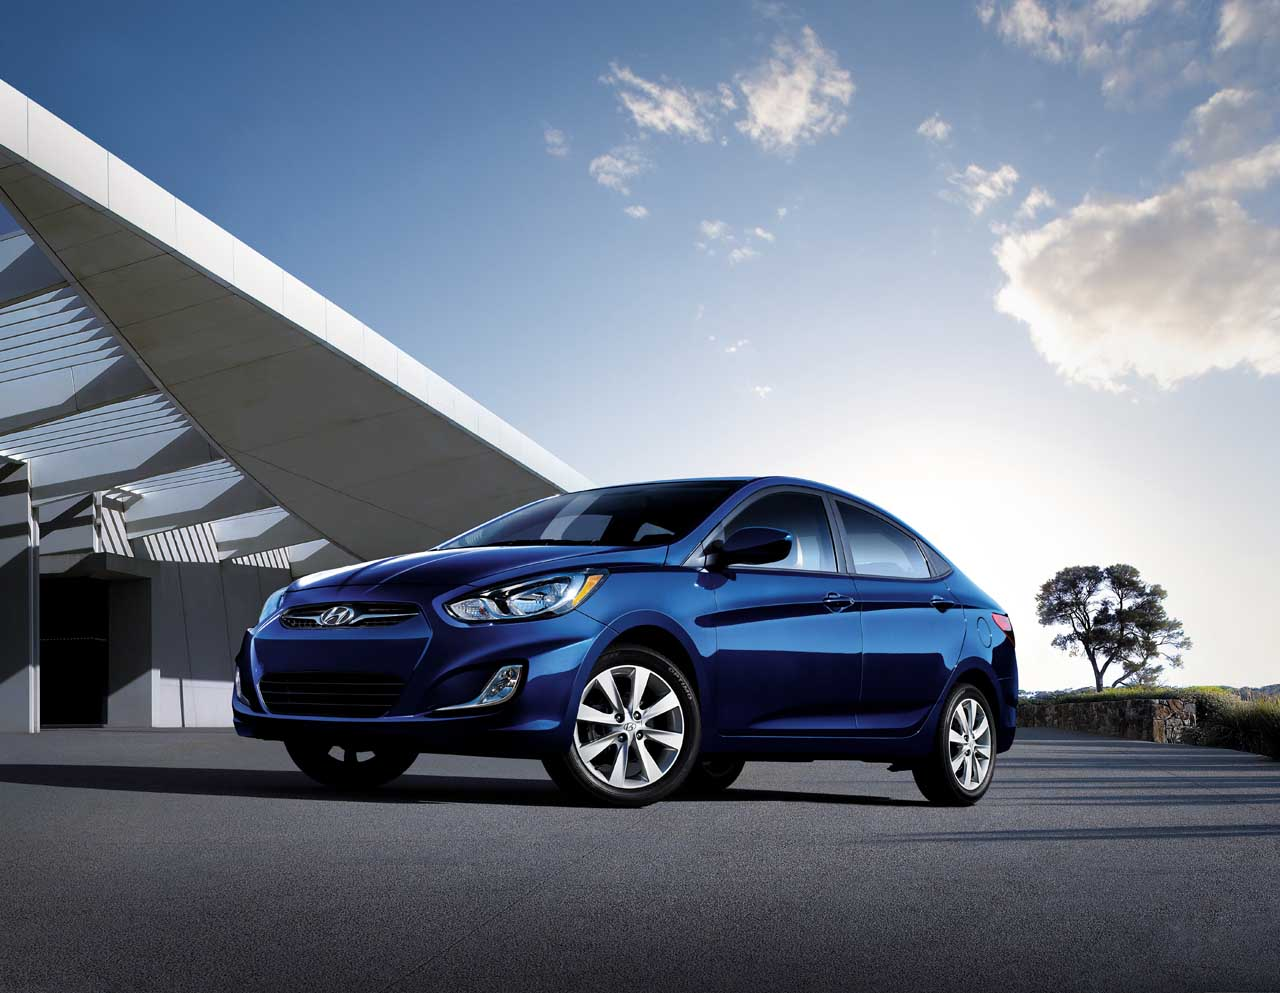 2013 Hyundai Accent (Photo 4 of 18)